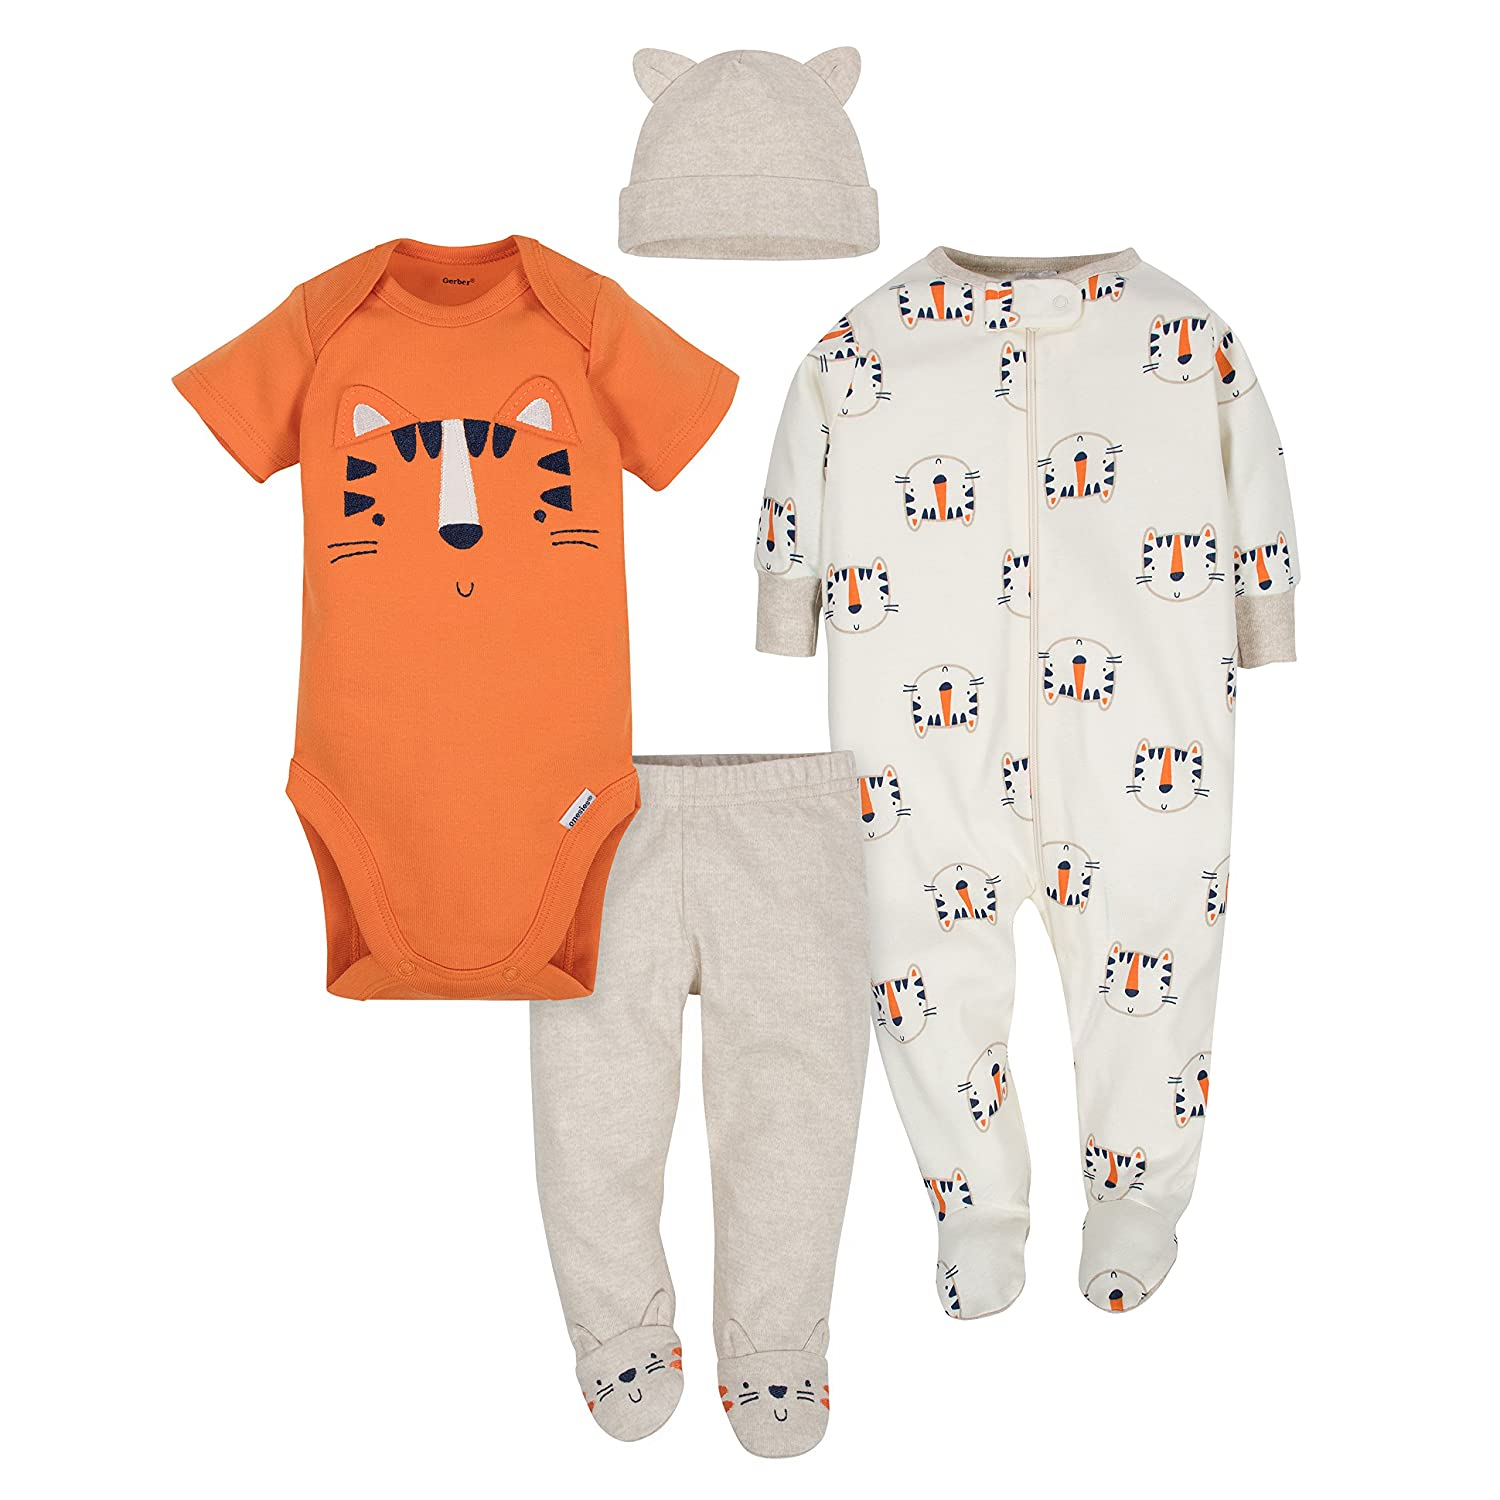 Gerber Baby Boys Infant-and-Toddler-Pants-Clothing-Sets